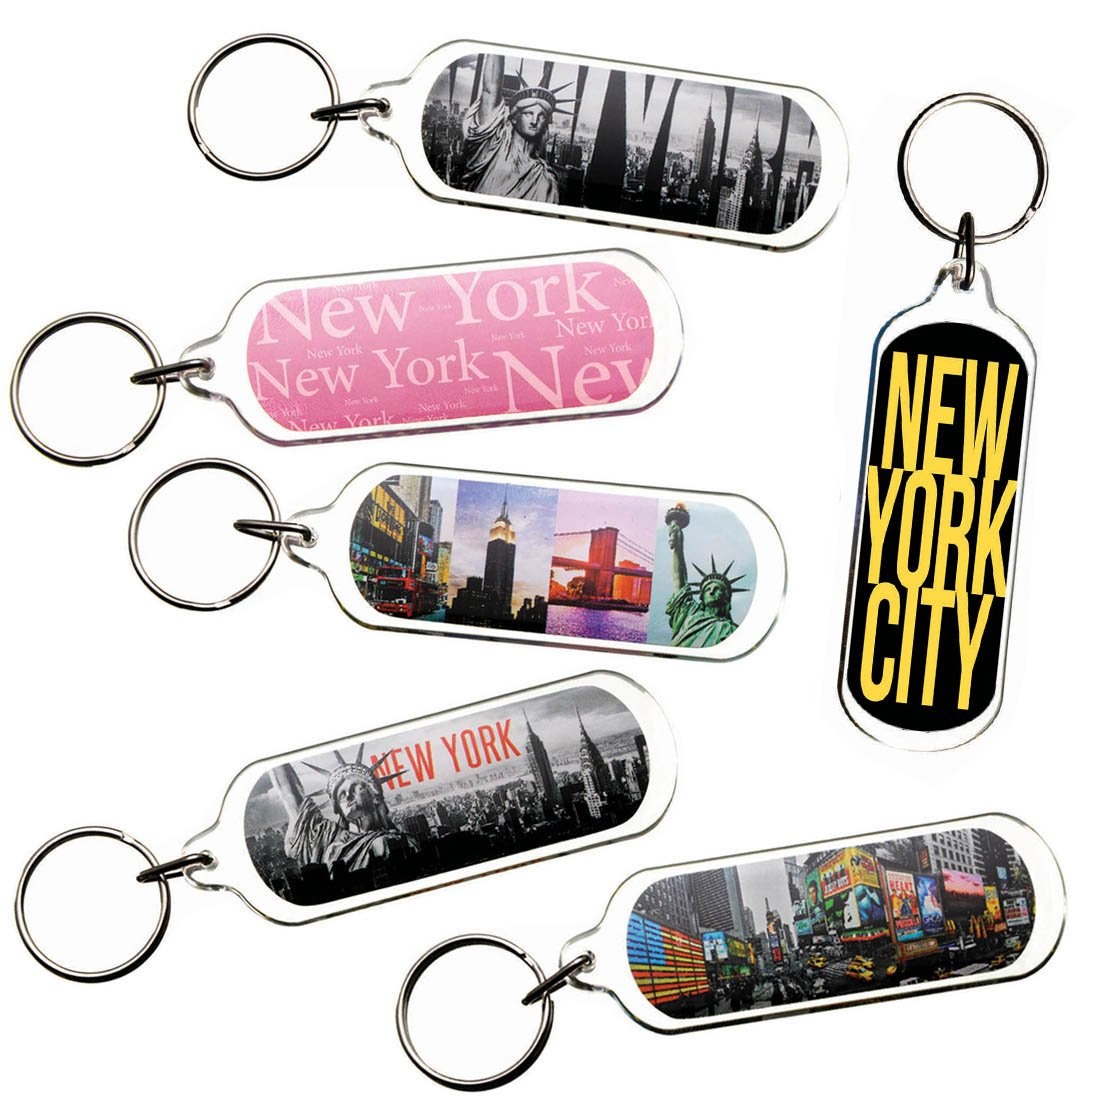 Ultimate Collectible New York NY NYC Manhattan Landmarks Photo Keychain Key Ring Gift Souvenir Set (18pk_SetA)